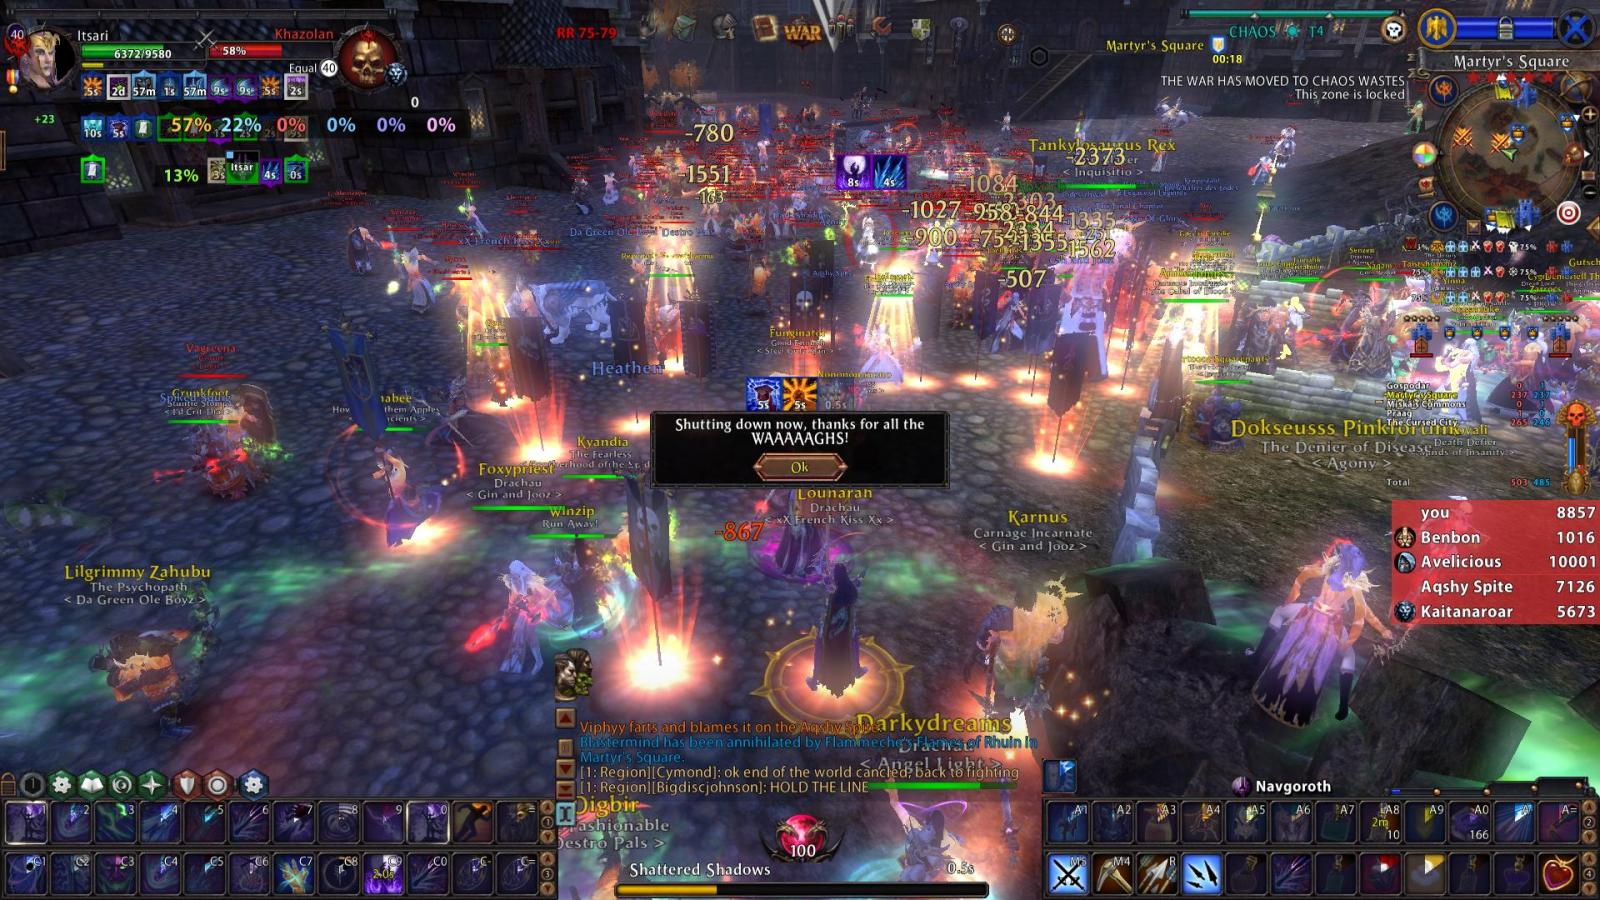 Warhammer Online Shuts Down, Private Server Launches #30079